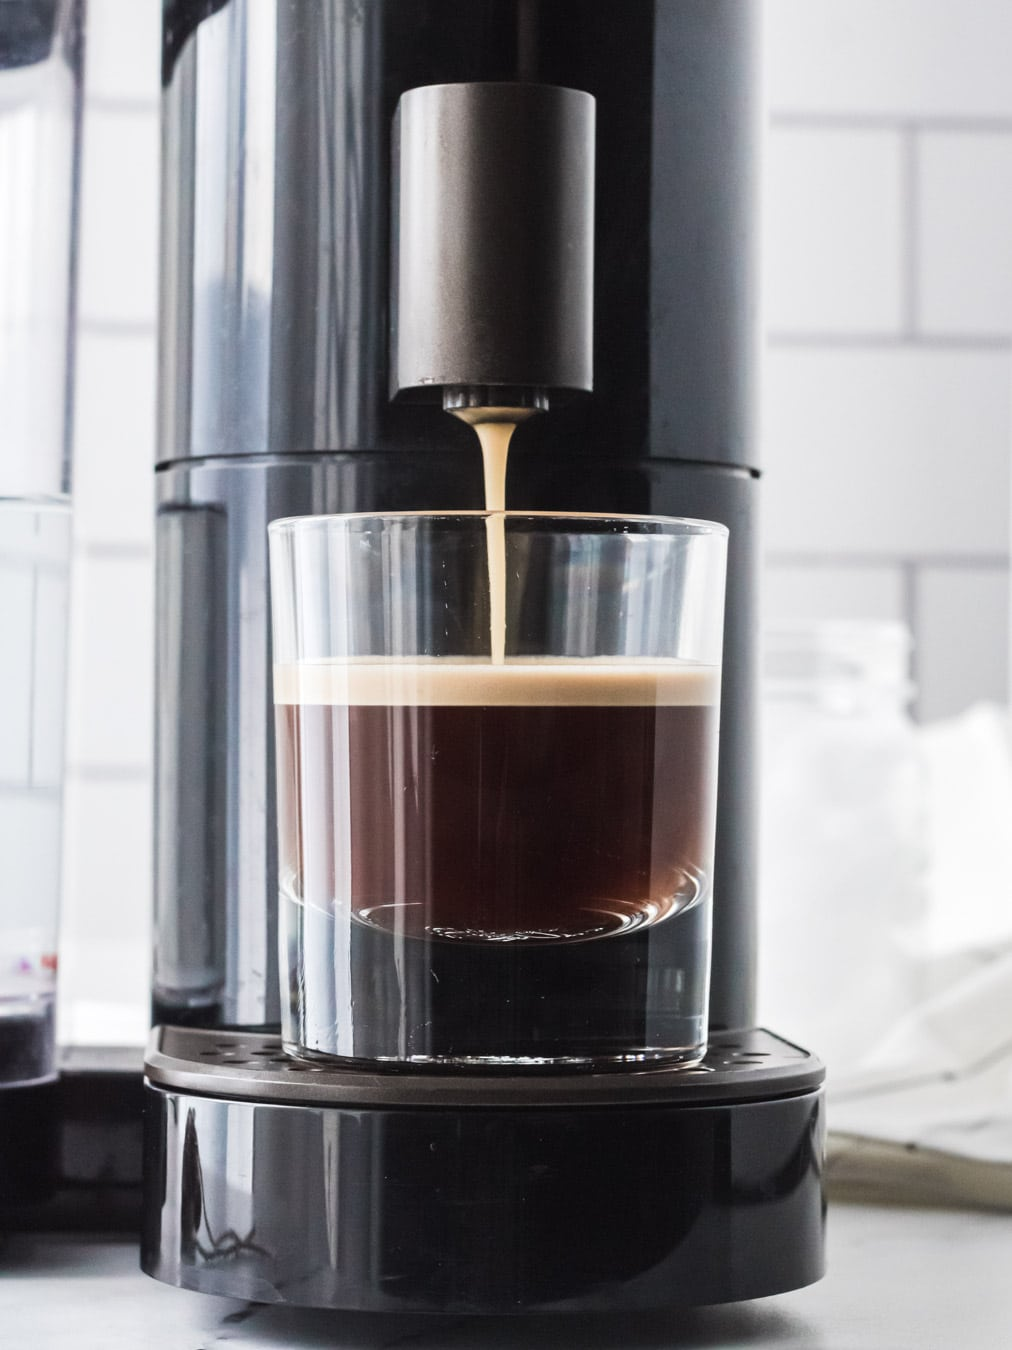 A machine is pulling shots of espresso into a clear glass.